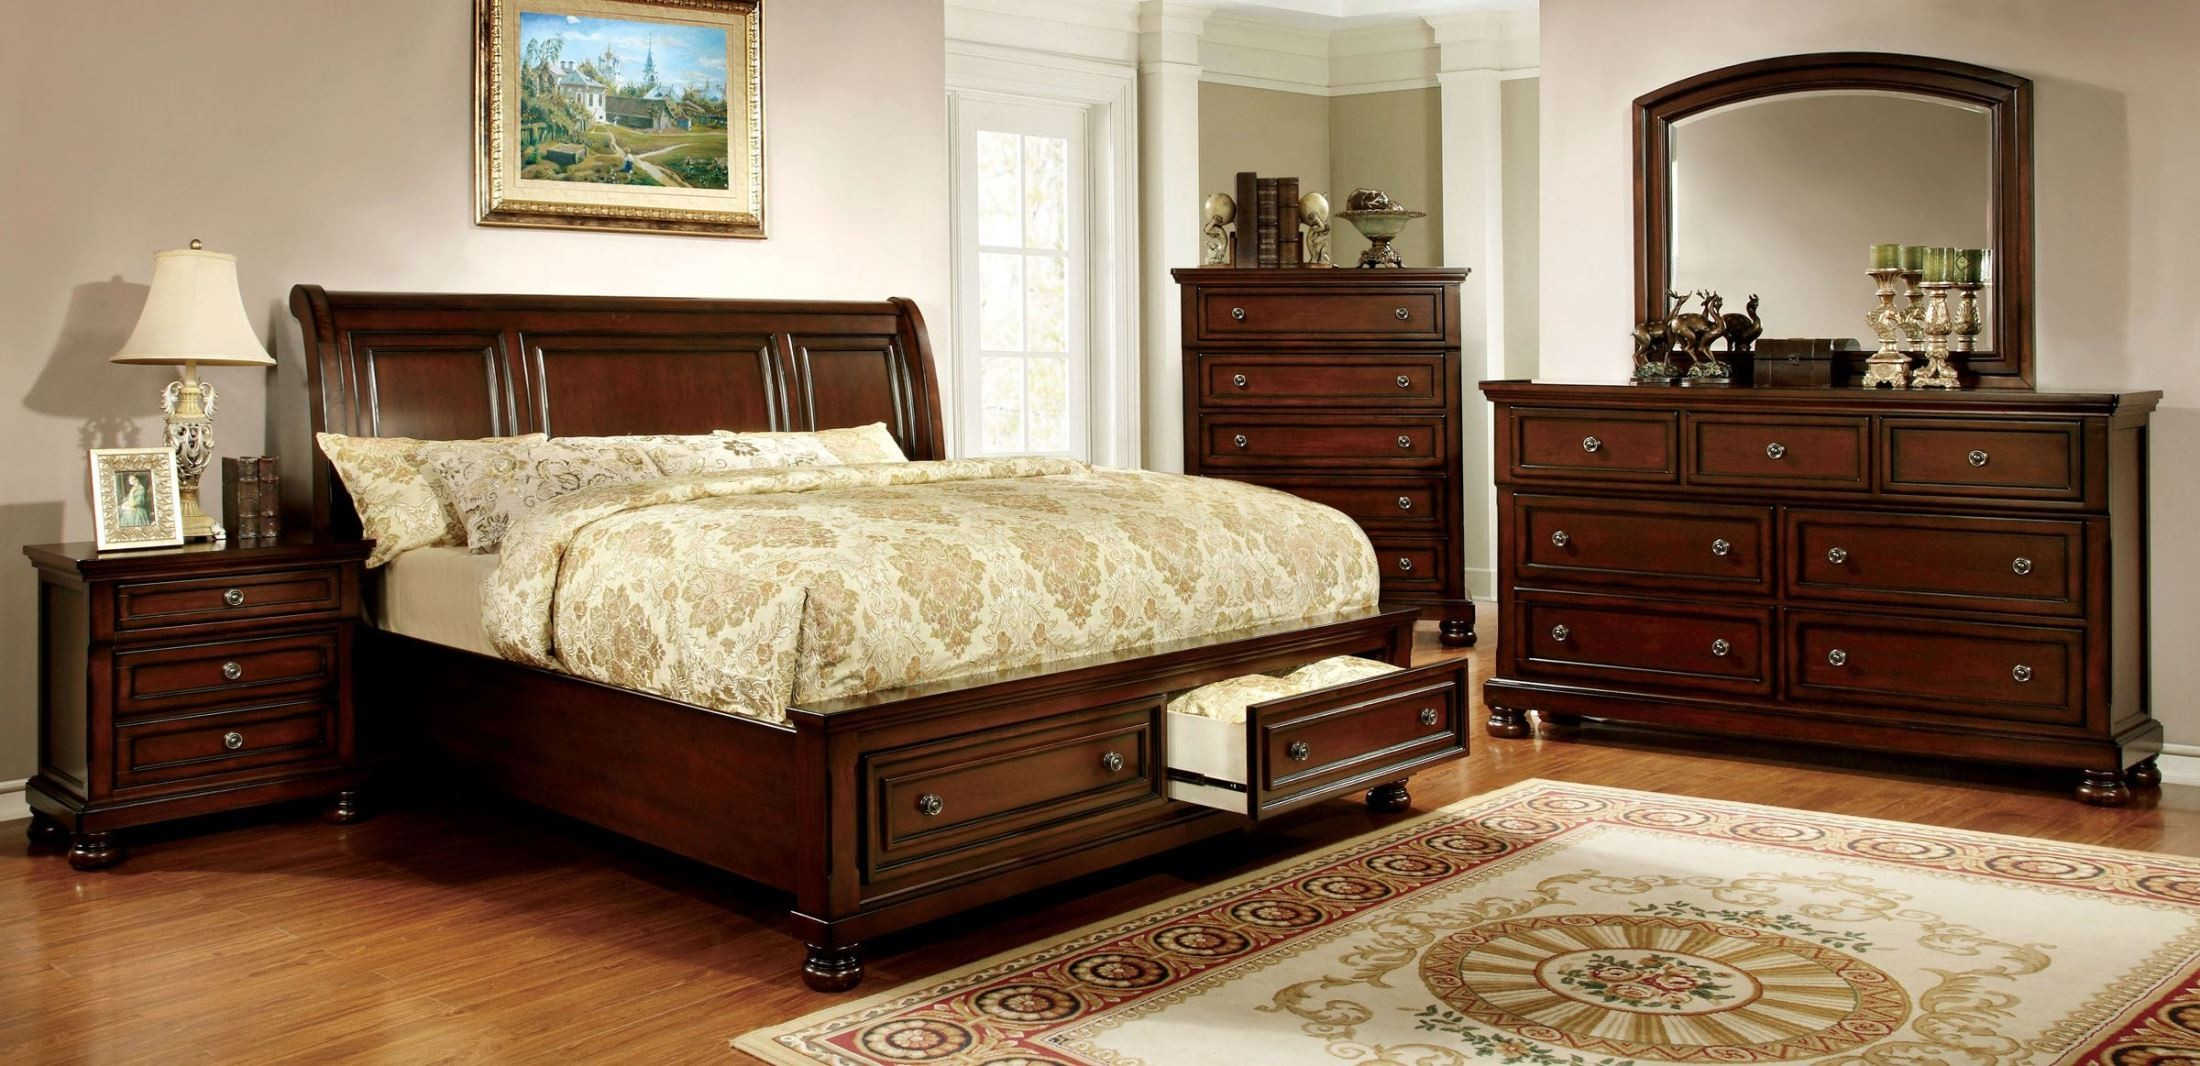 Northville Dark Cherry Platform Storage Bedroom Set from Furniture